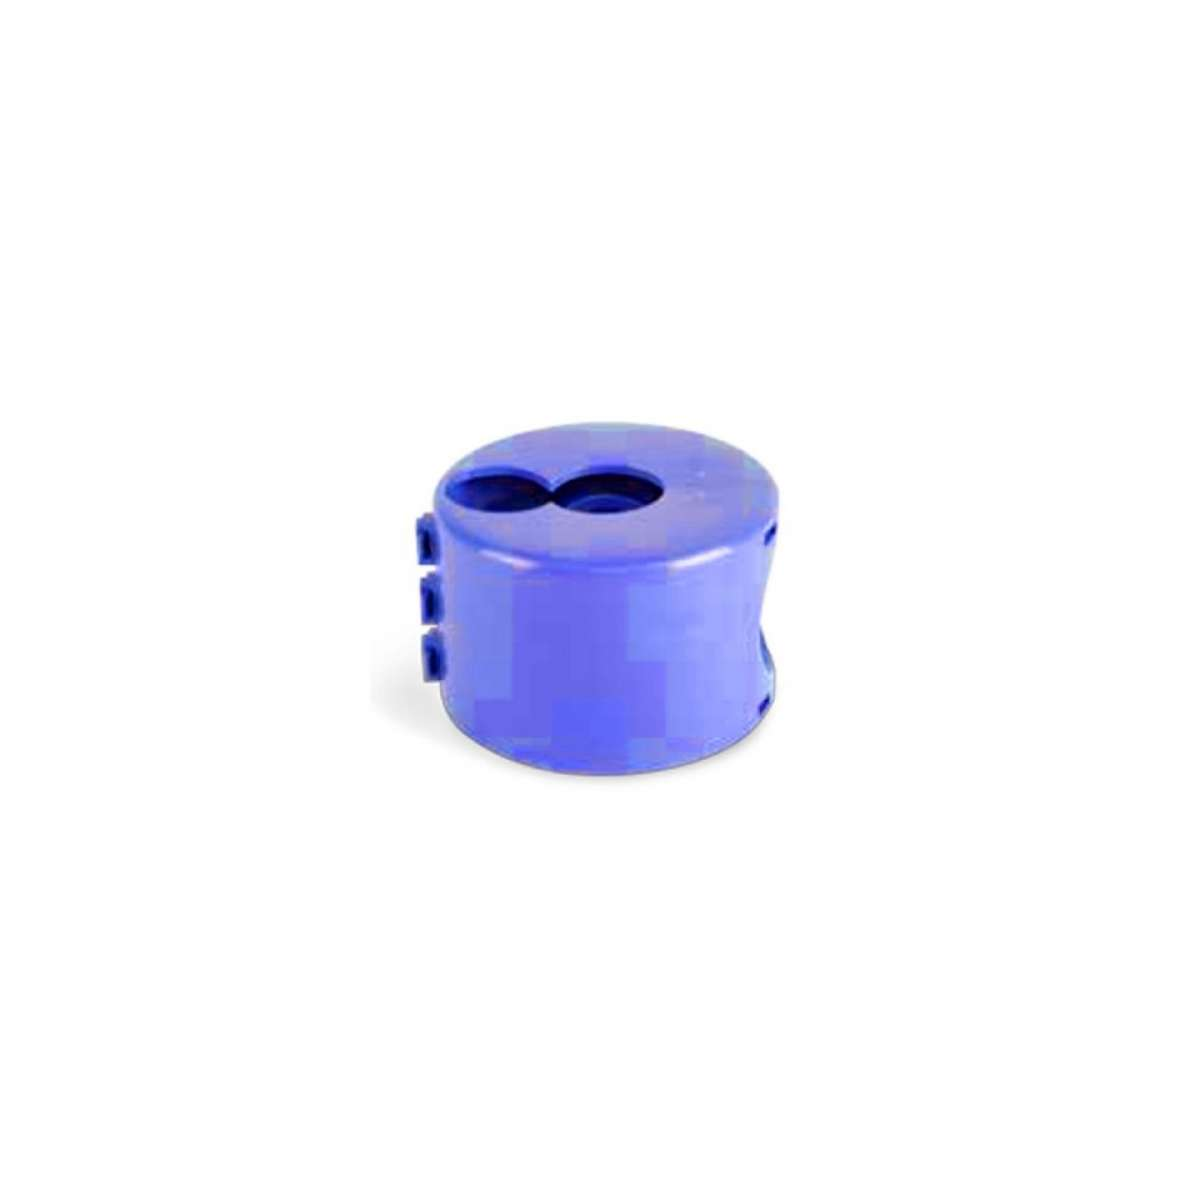 IsoLink Pump Color-Coding Ring - Blue